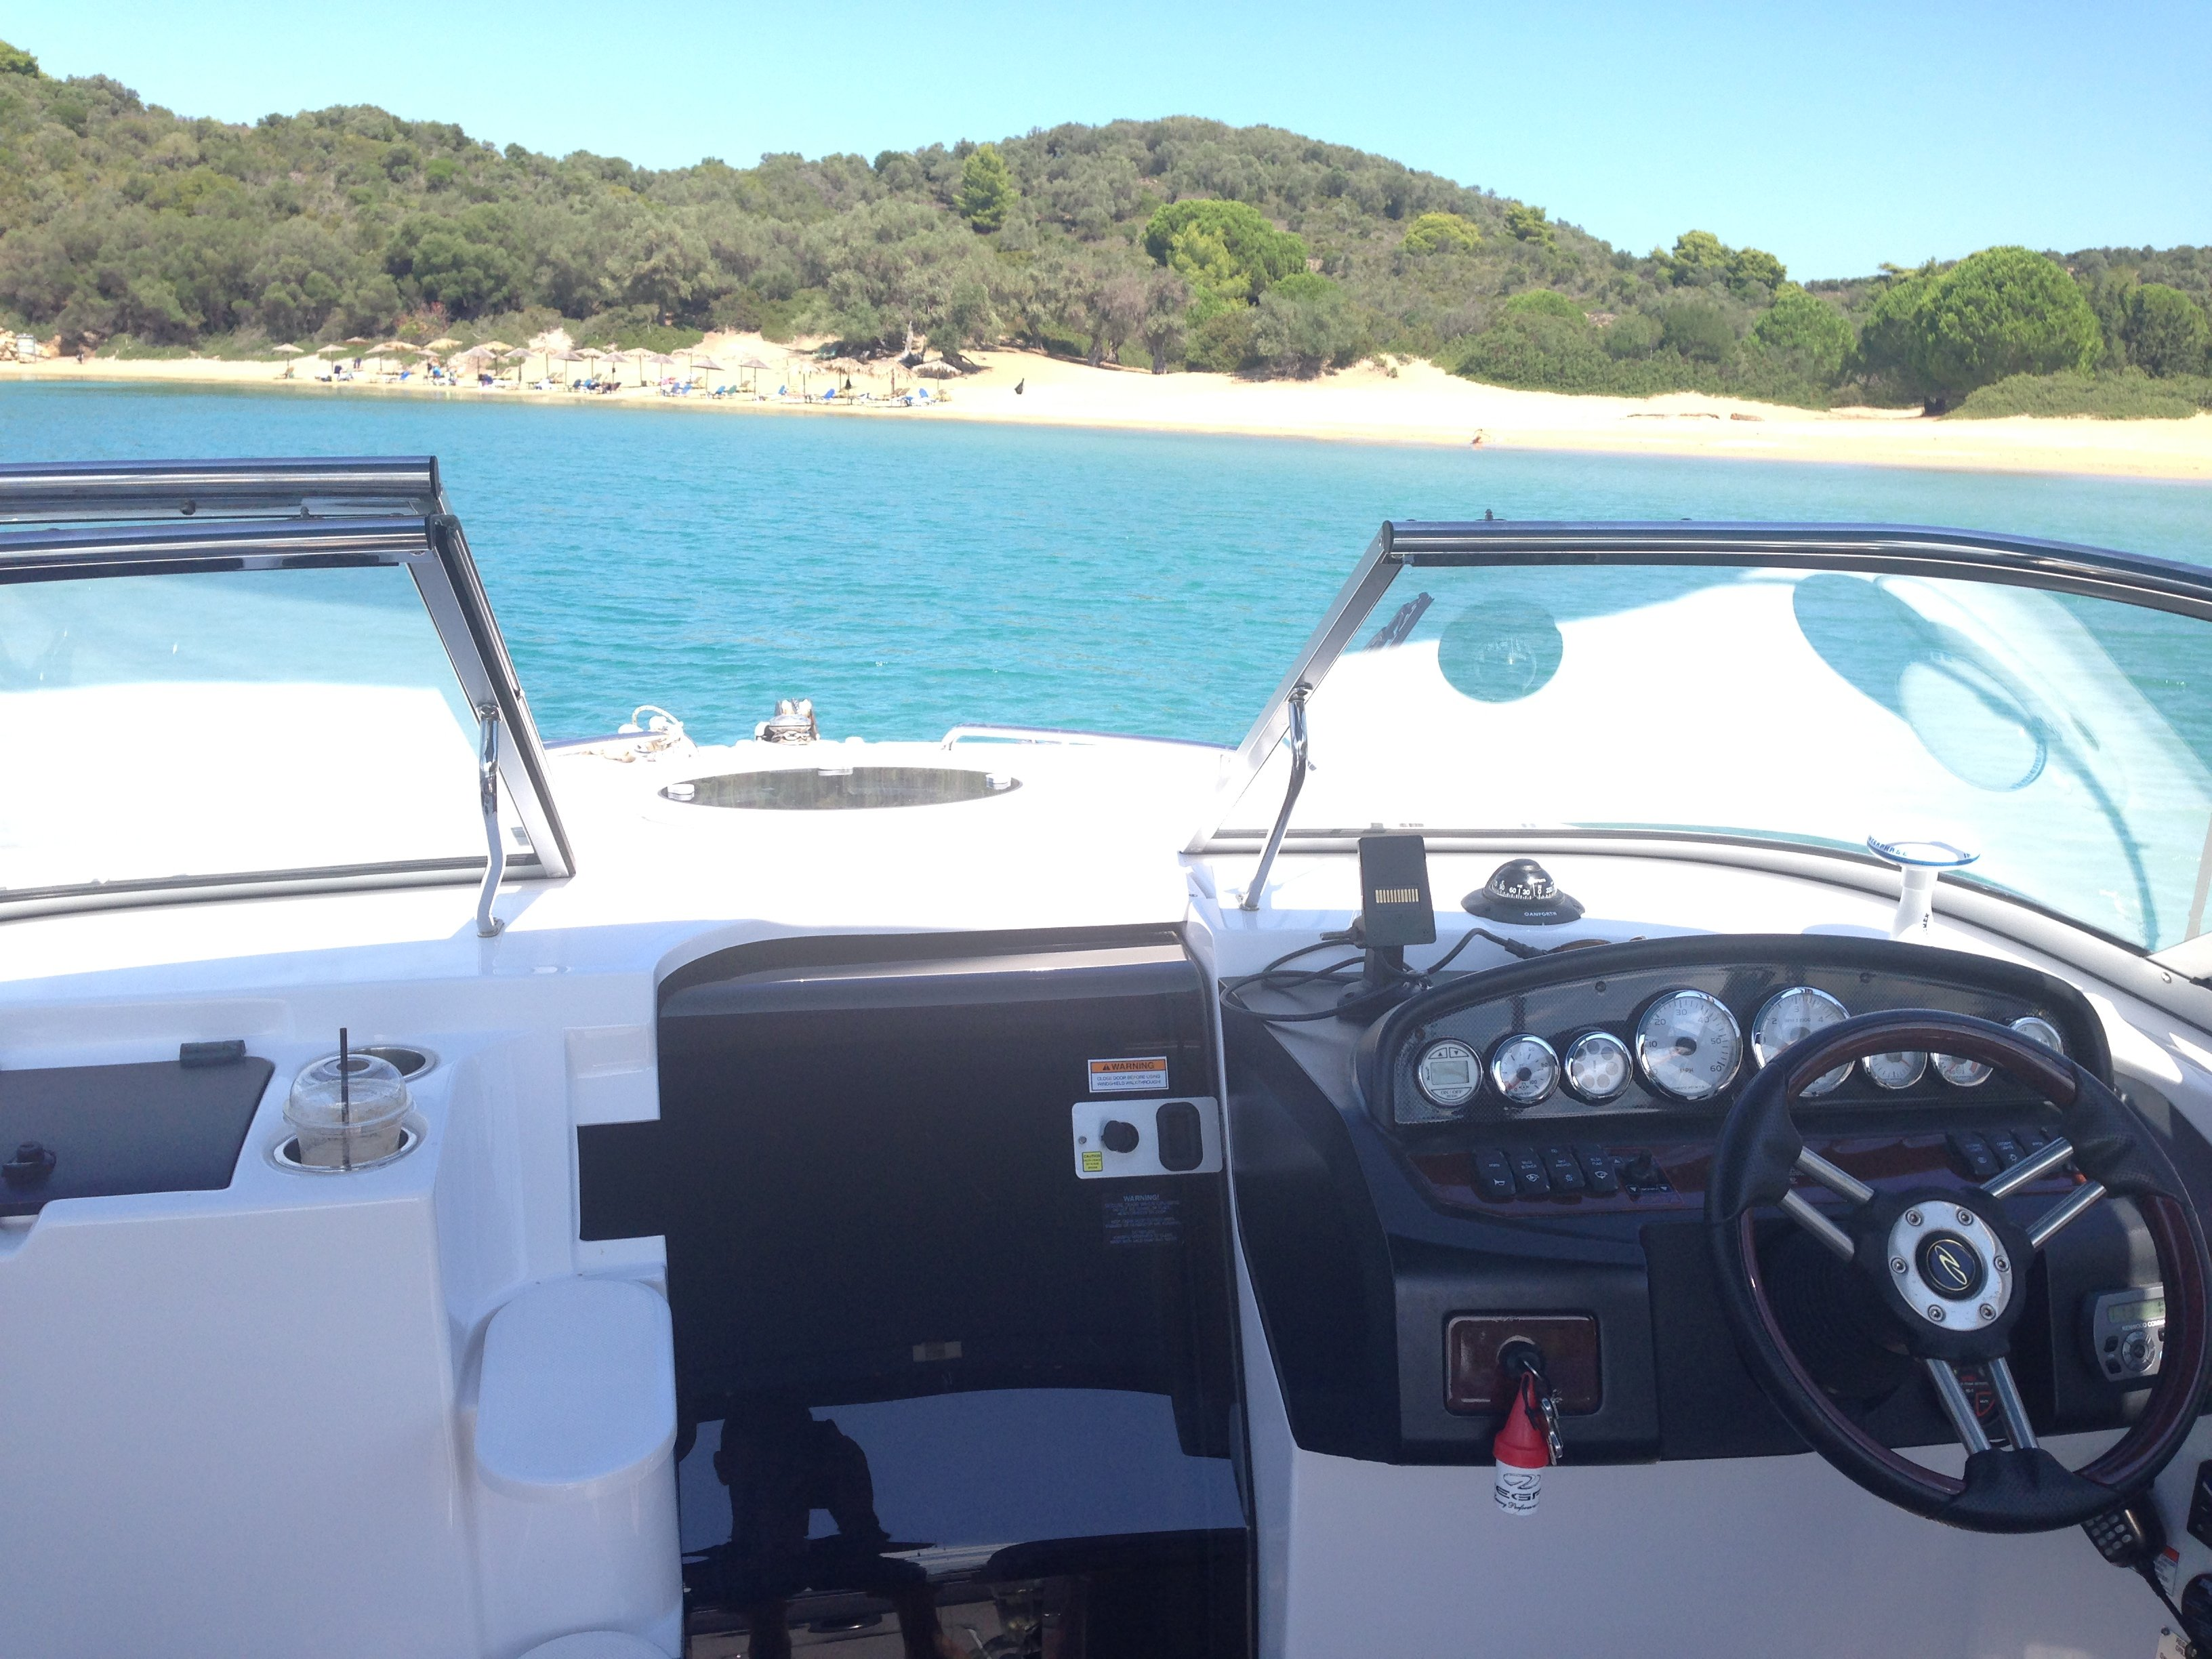 sofa ski school review retro uk vip trips with a luxury boat stefanos and